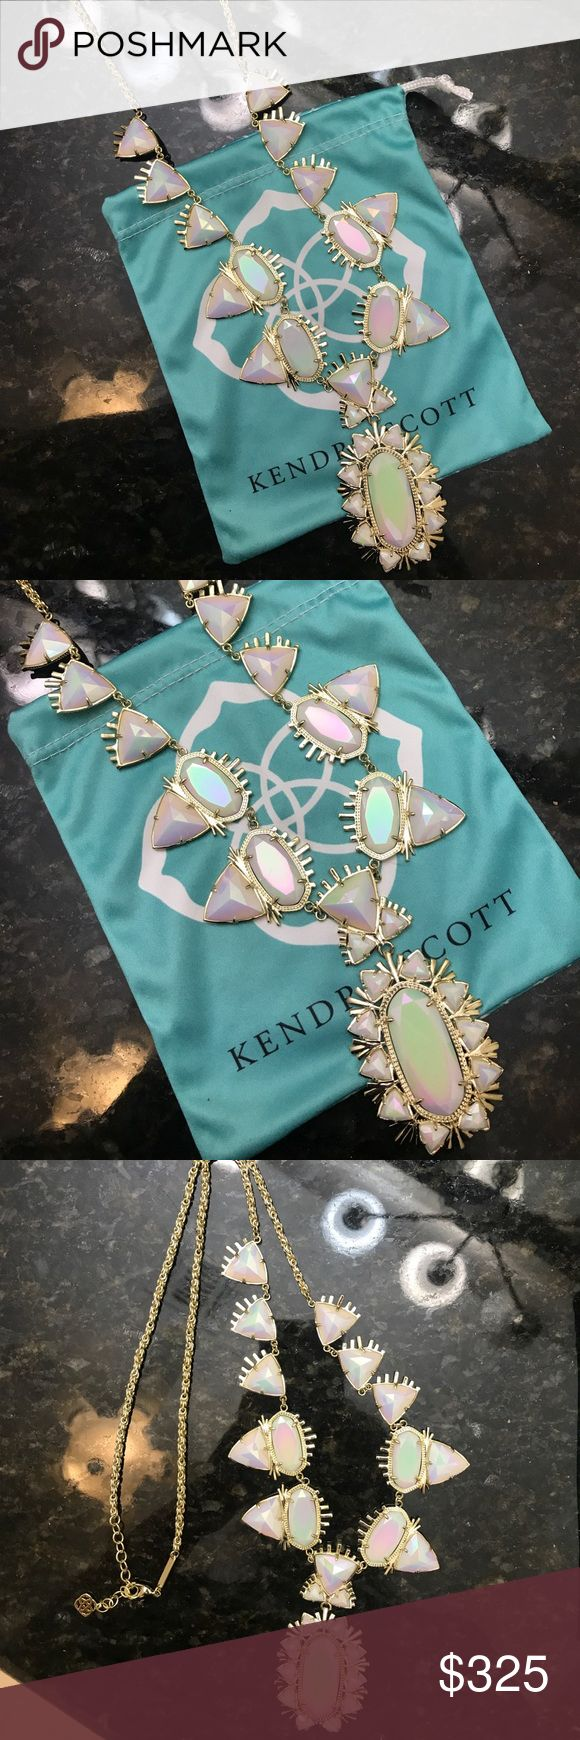 Kendra Scott White Iridescent Havana Necklace Rare Rare Havana Necklace. This piece is so stunning!  Never worn, only stored in my jewelry chest and admired. Comes with pouch. Any questions, please ask! Kendra Scott Jewelry Necklaces